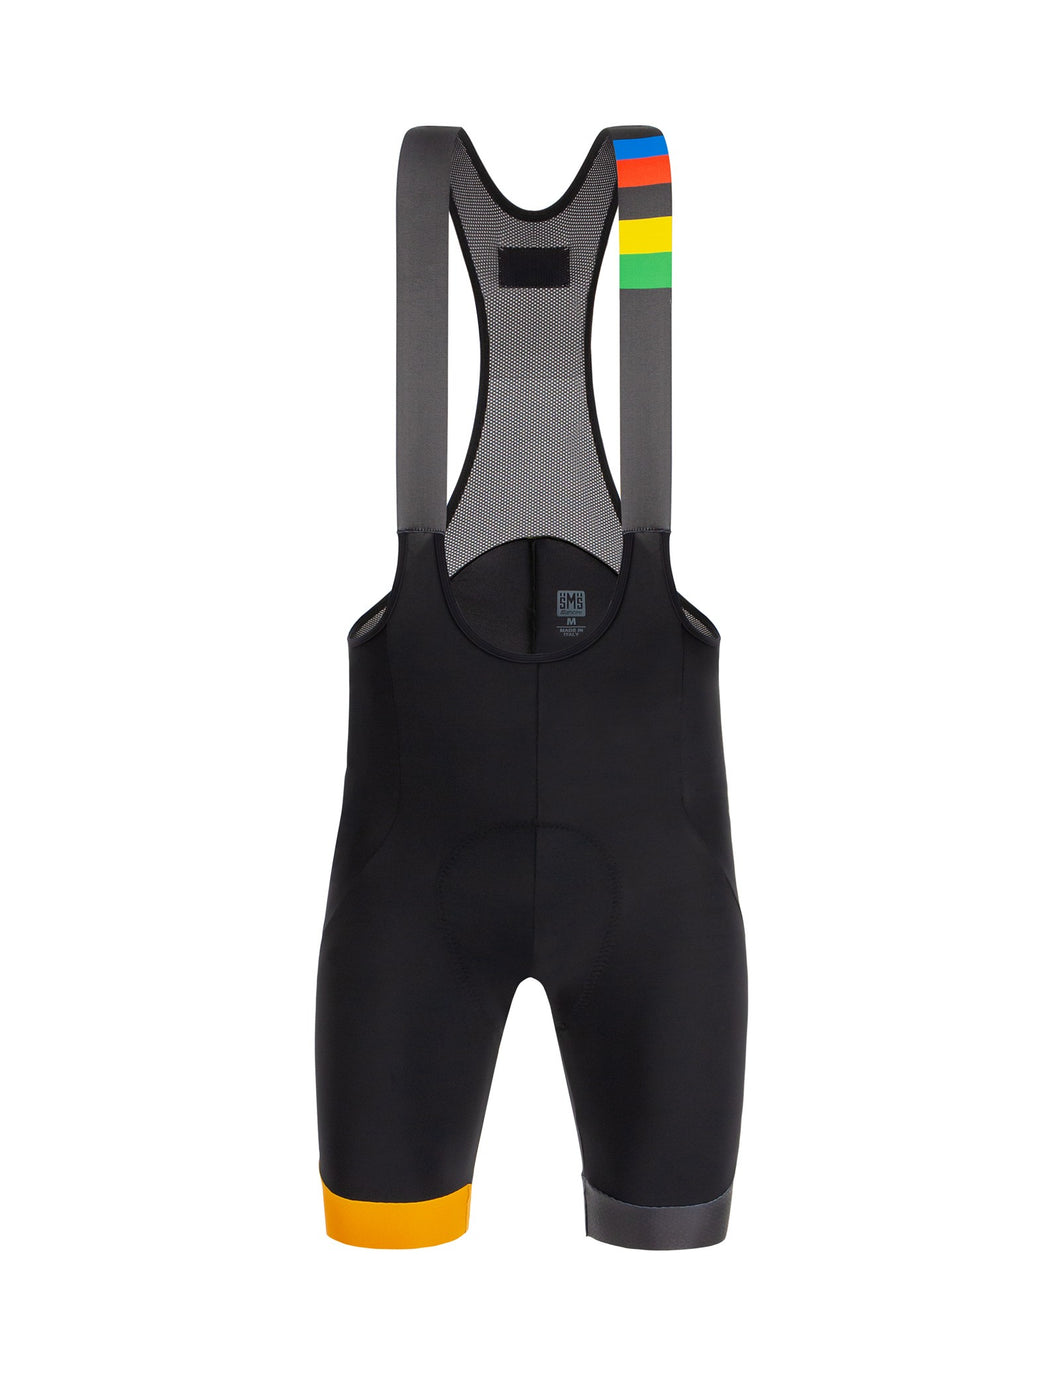 'Eyes on the Prize' Bib Shorts - UCI Collection by Santini | Cento Cycling